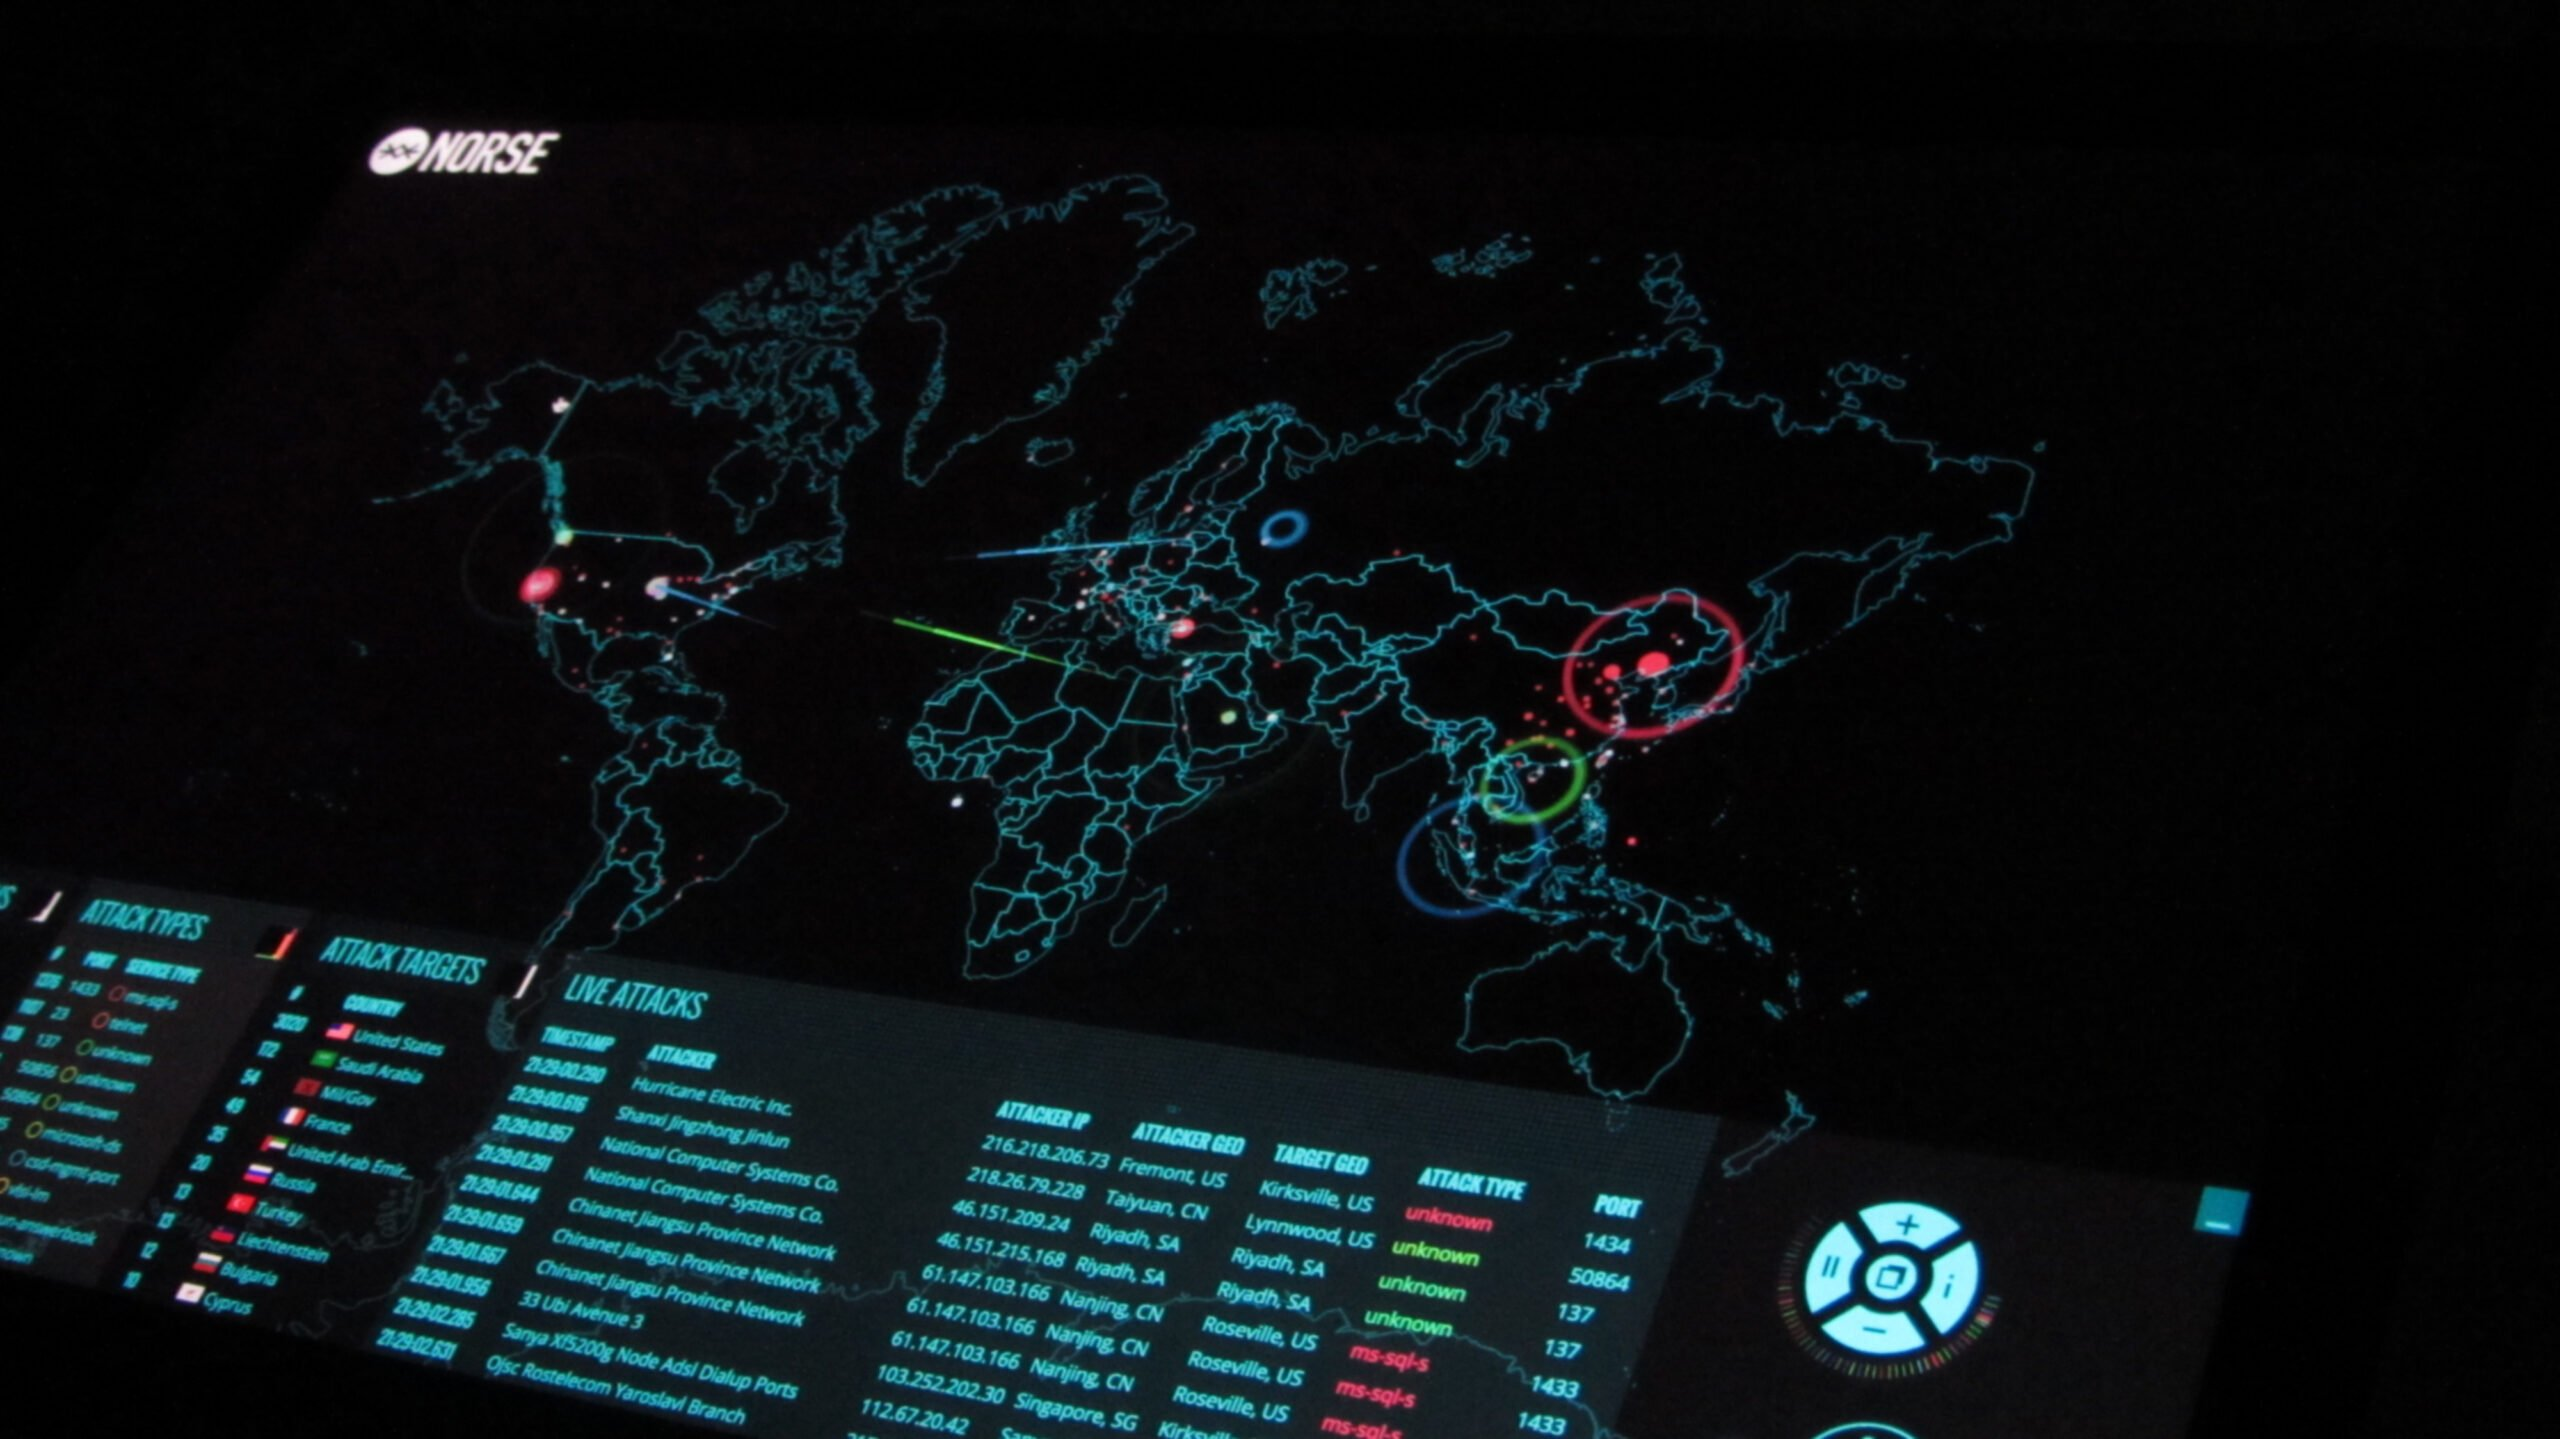 Computer dashboard in digital showing cyber attacks across the world with coloured lines on a map